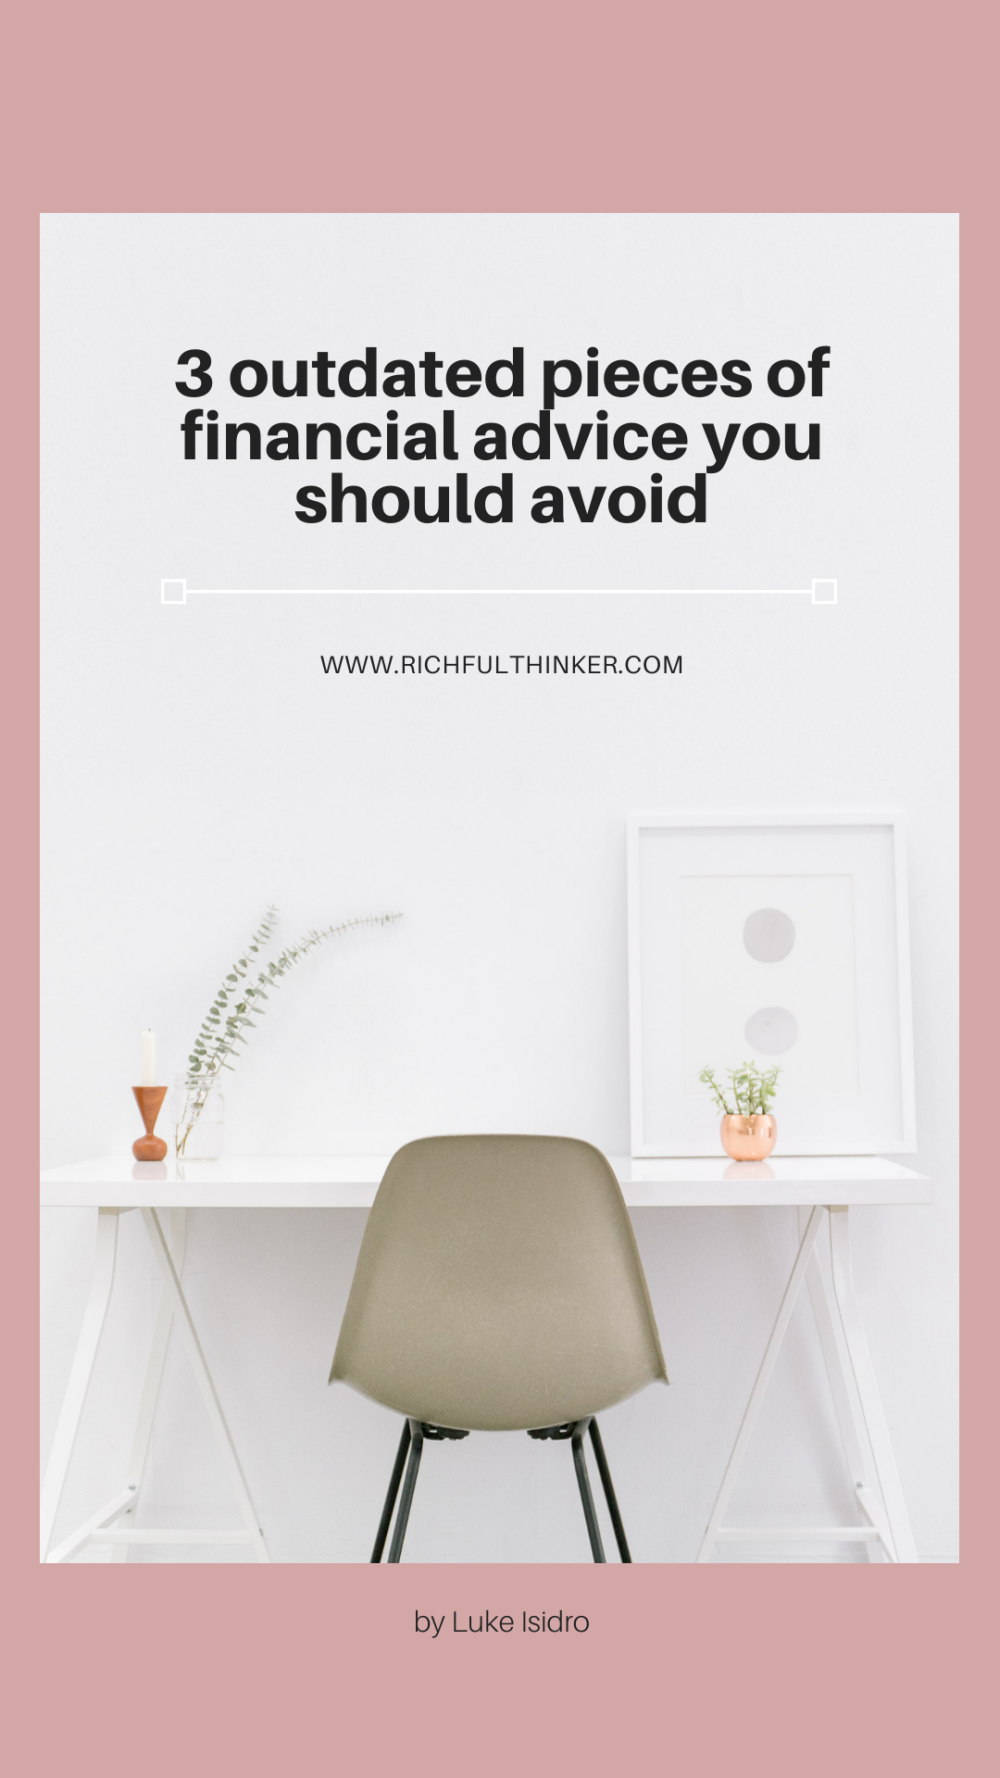 3 outdated pieces of financial advice you should avoid